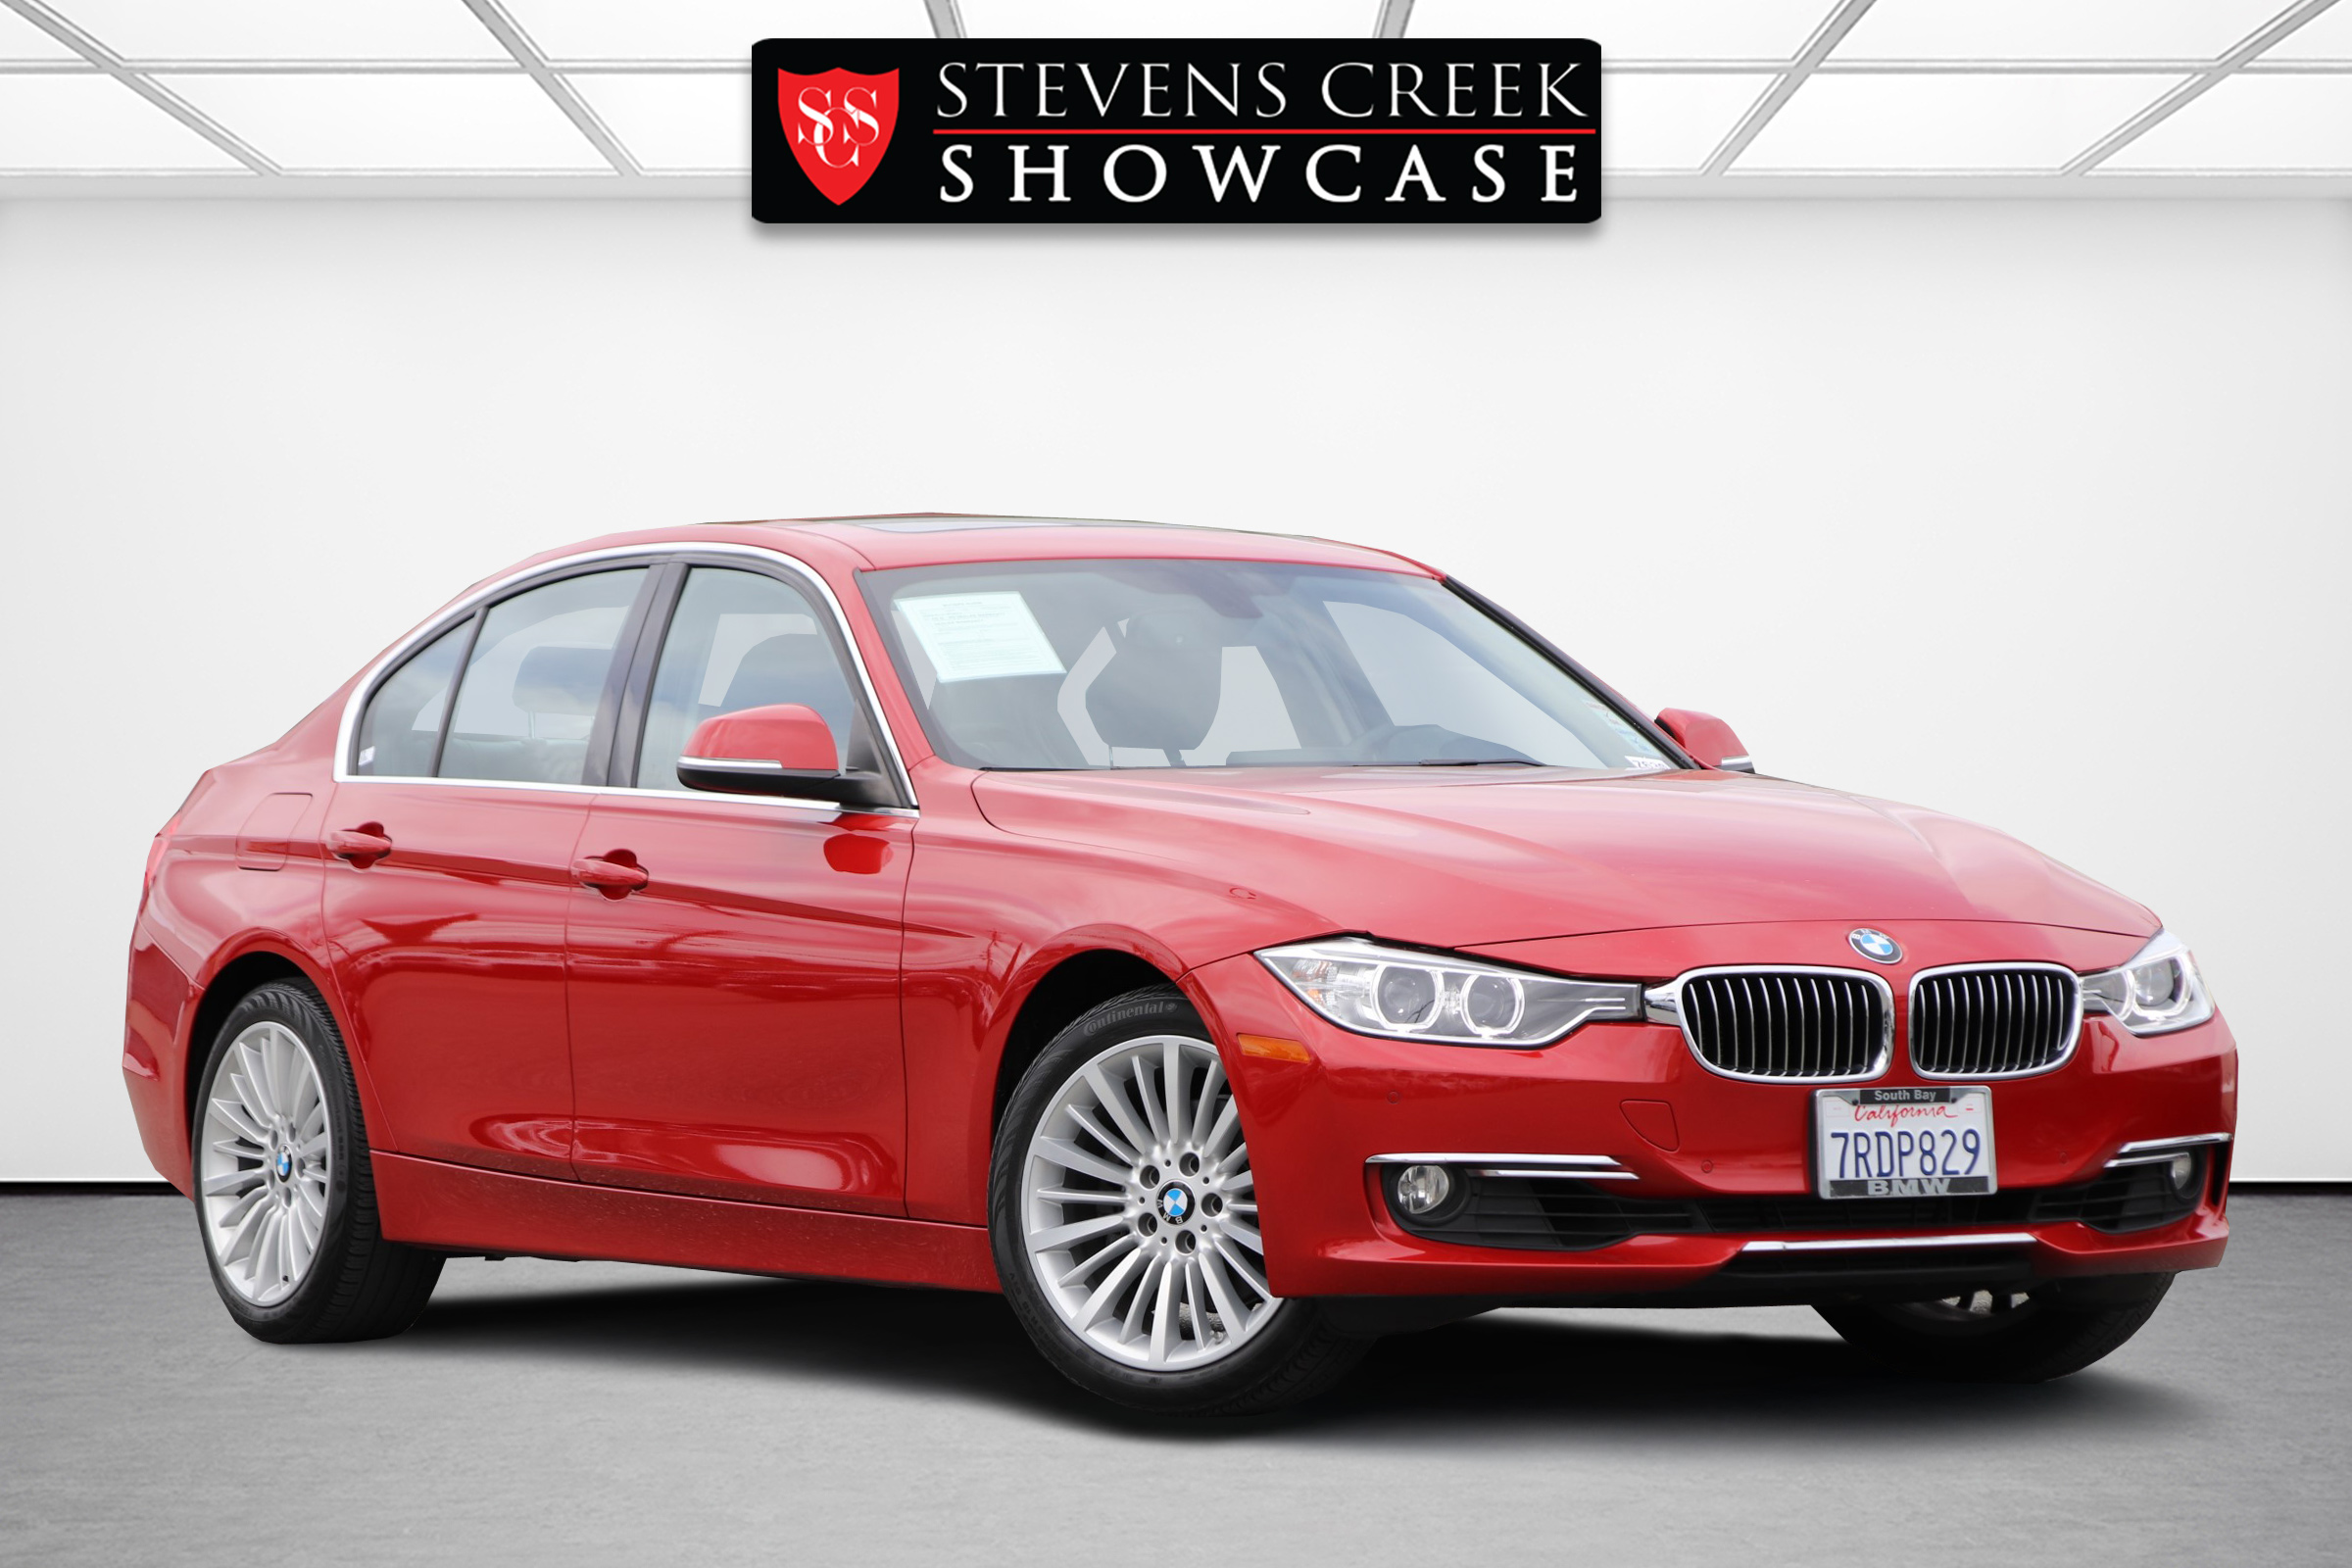 Used BMW for Sale San Jose CA - Stevens Creek Showcase